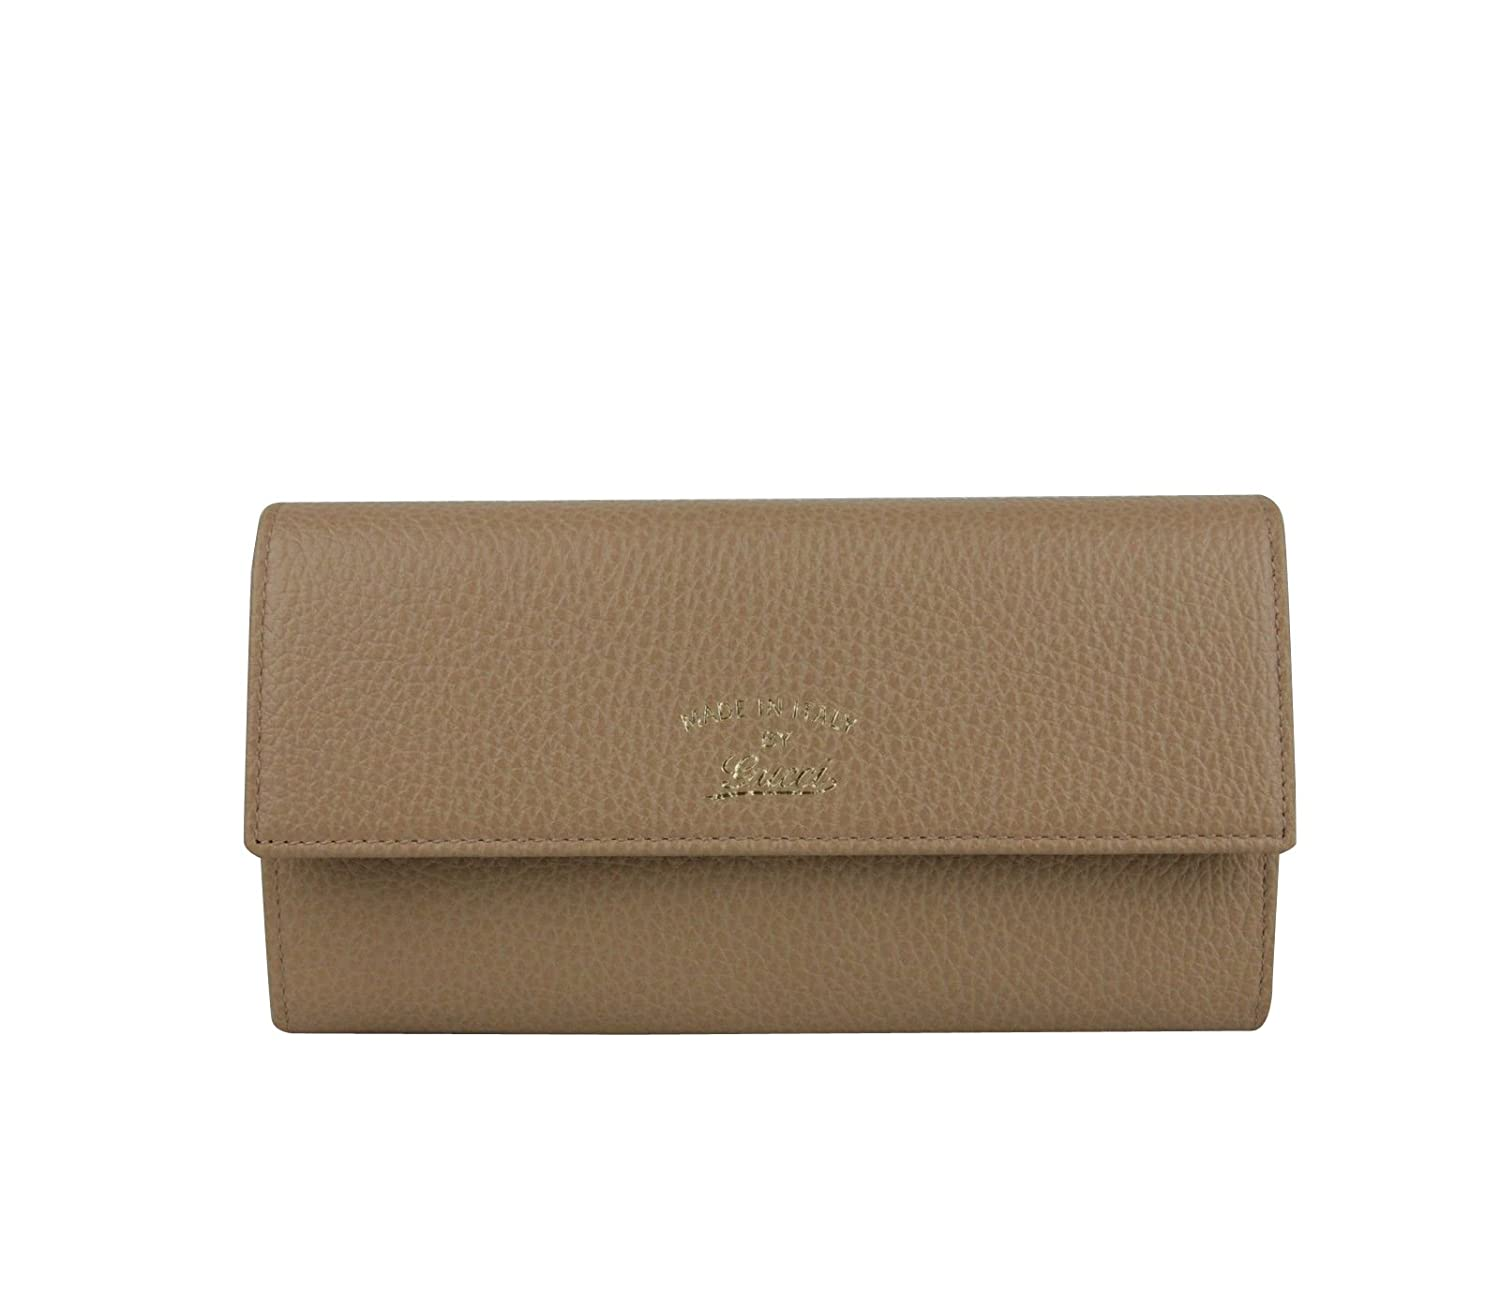 d3d171599ca78a Gucci Light Brown Leather Wallet With Coin Pocket 354496 2762 at Amazon  Women's Clothing store: